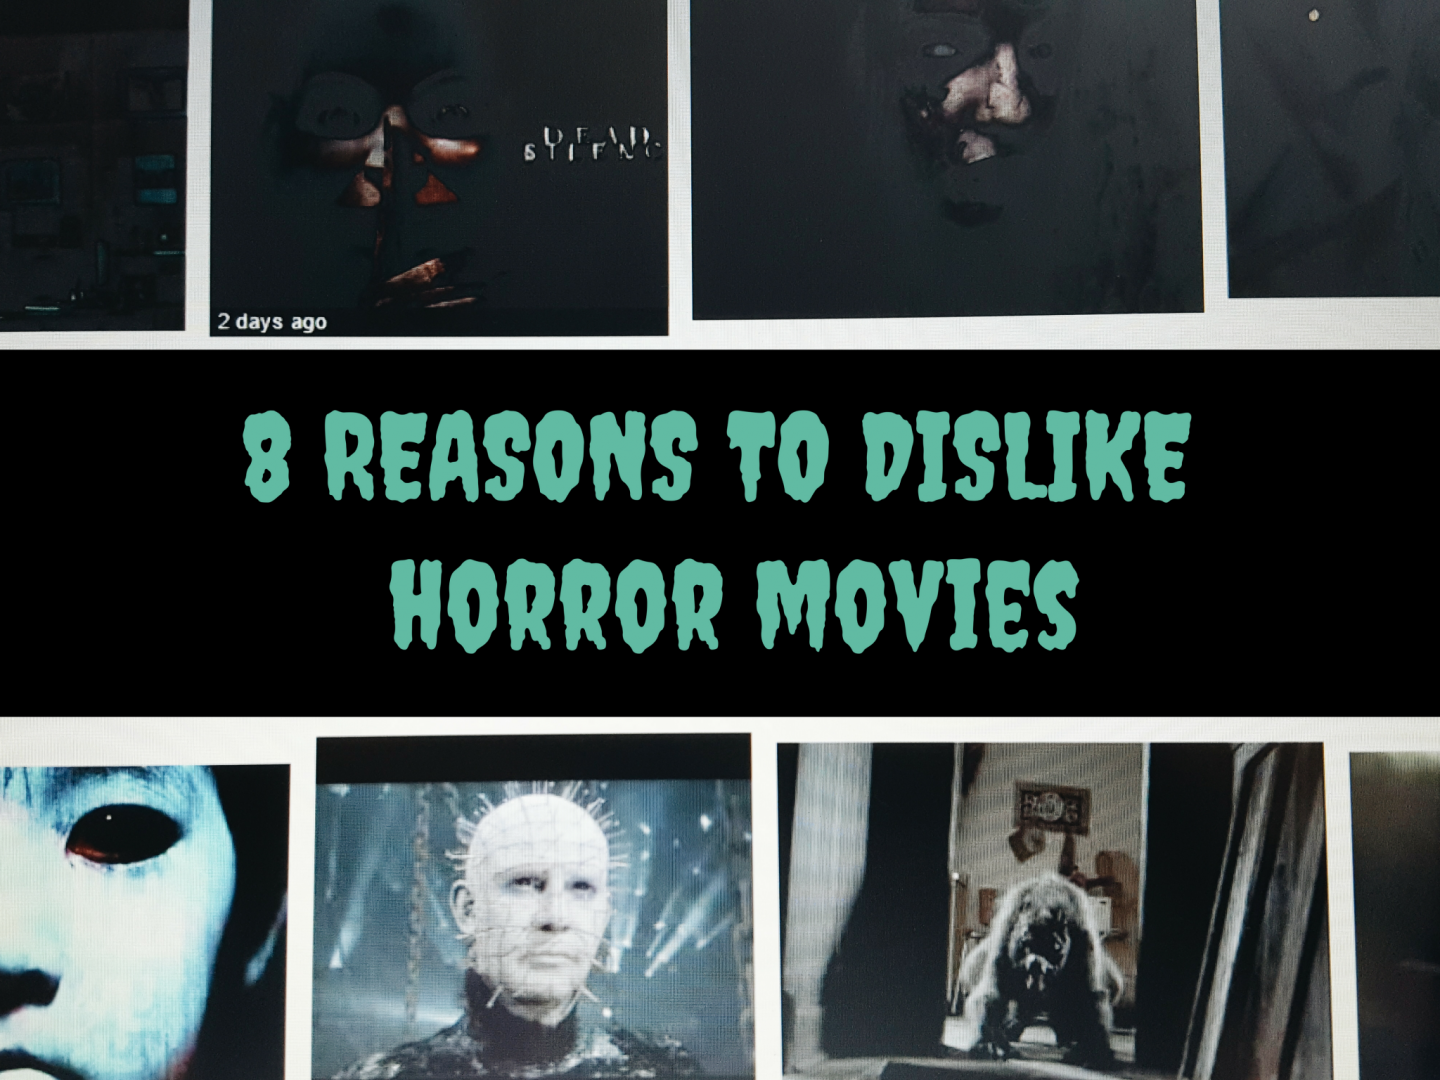 8 Reasons Why I Dislike Horror Movies